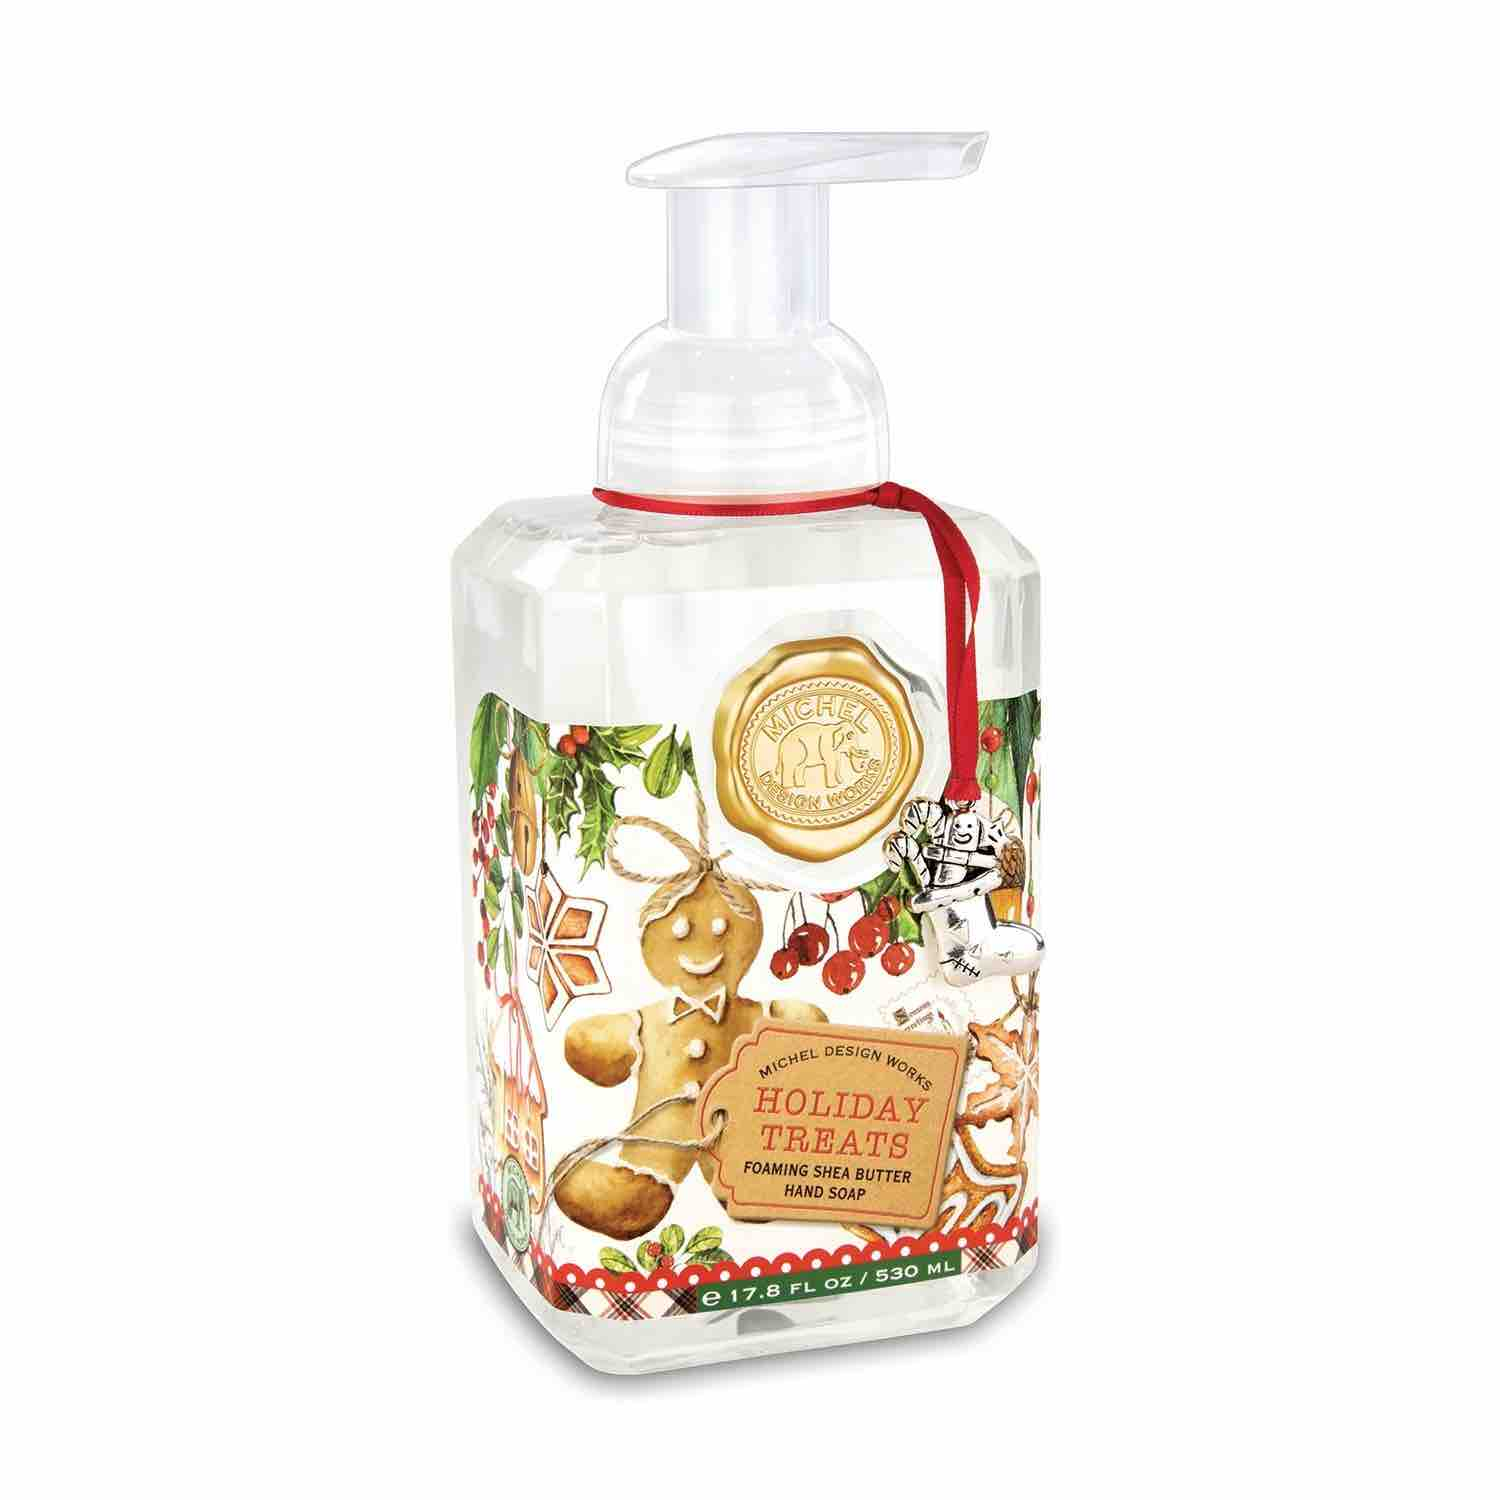 Michel Design Works Foaming Soap | Holiday Treats